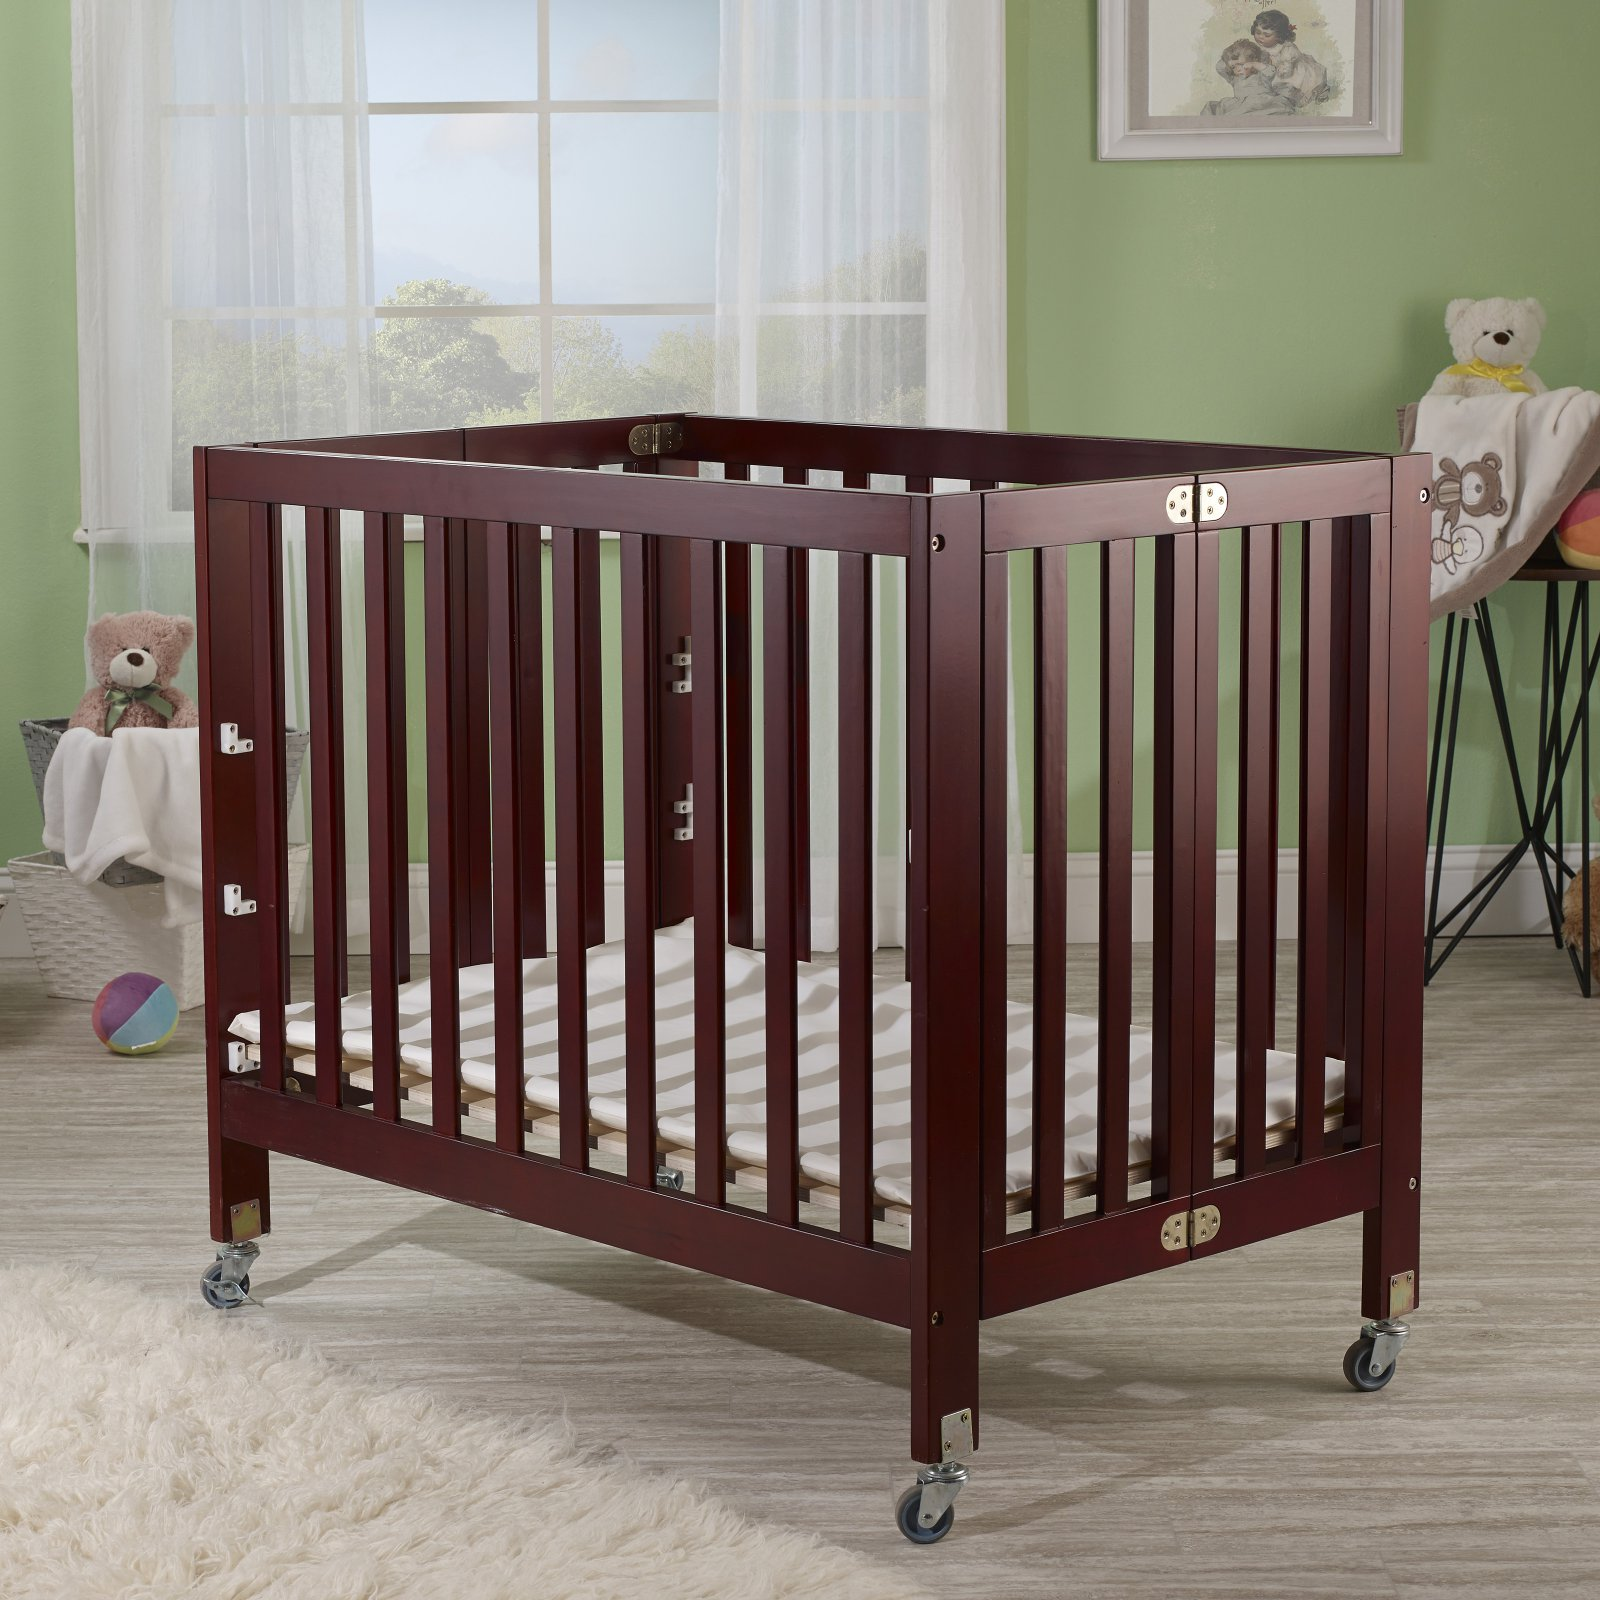 Orbelle Roxy 3-in-1 Mini Portable Crib by Orbelle